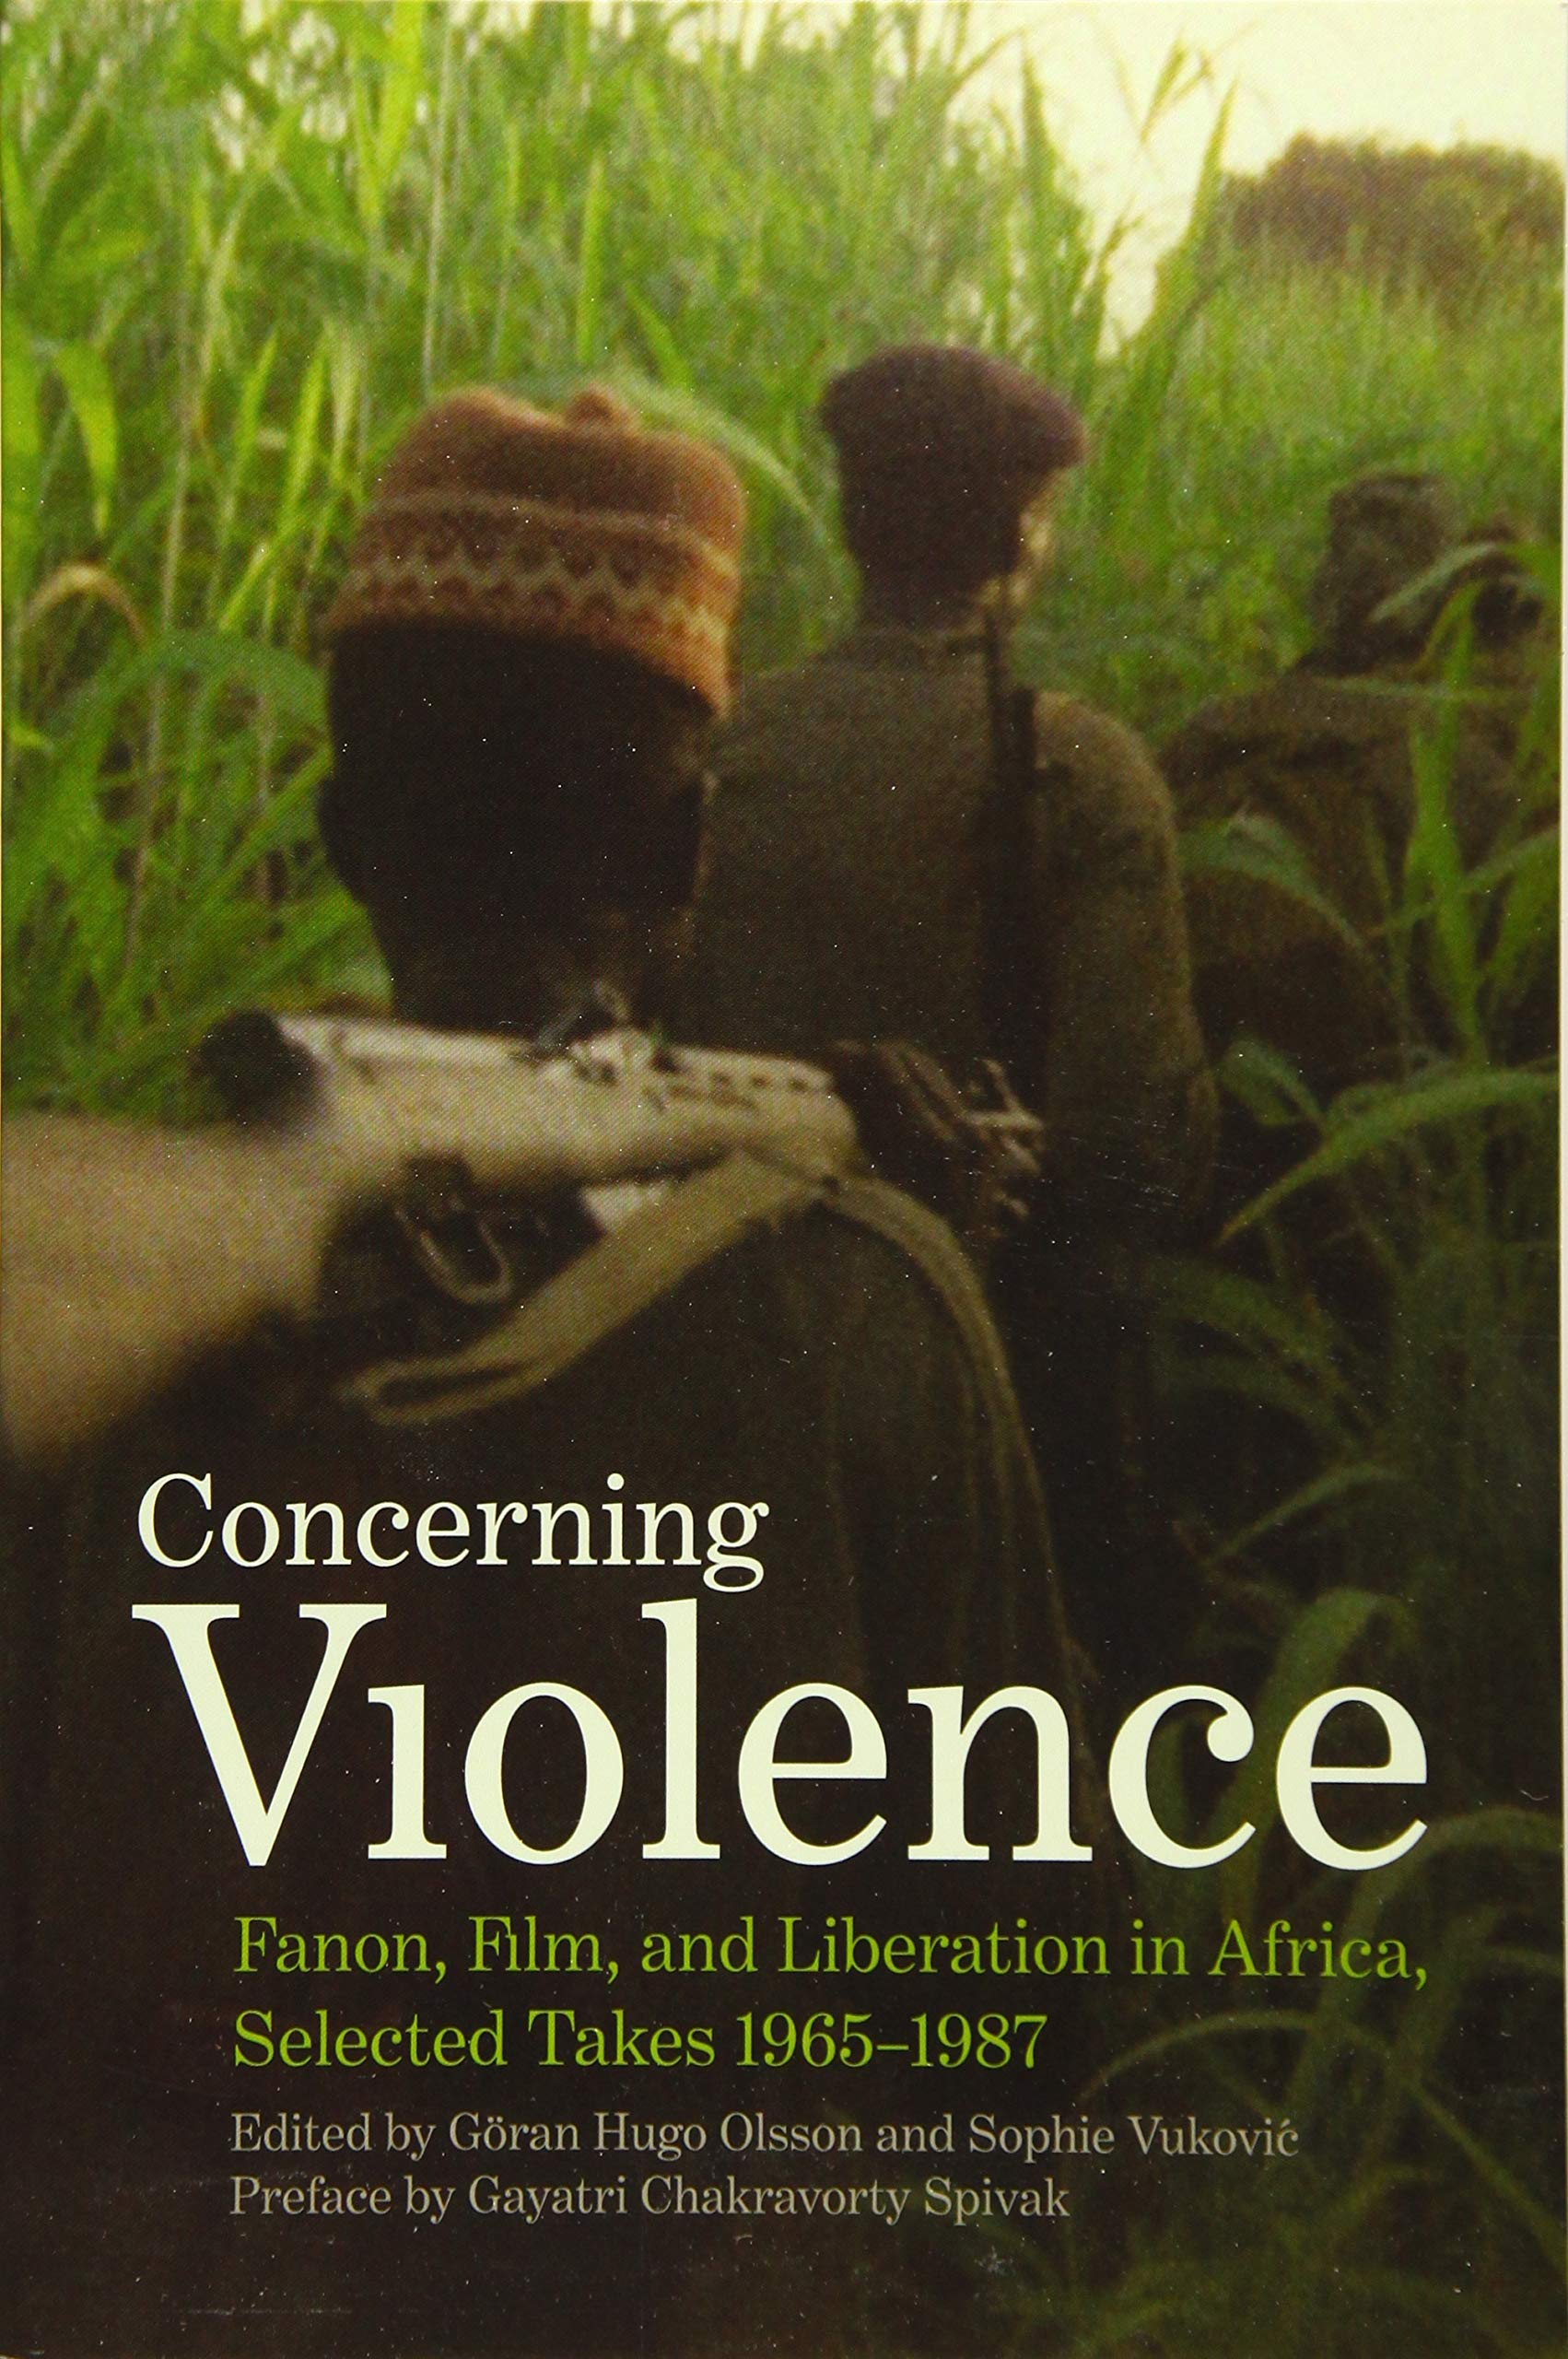 Concerning Violence: Fanon, Film, and Liberation in Africa, Selected Takes 1965-1987